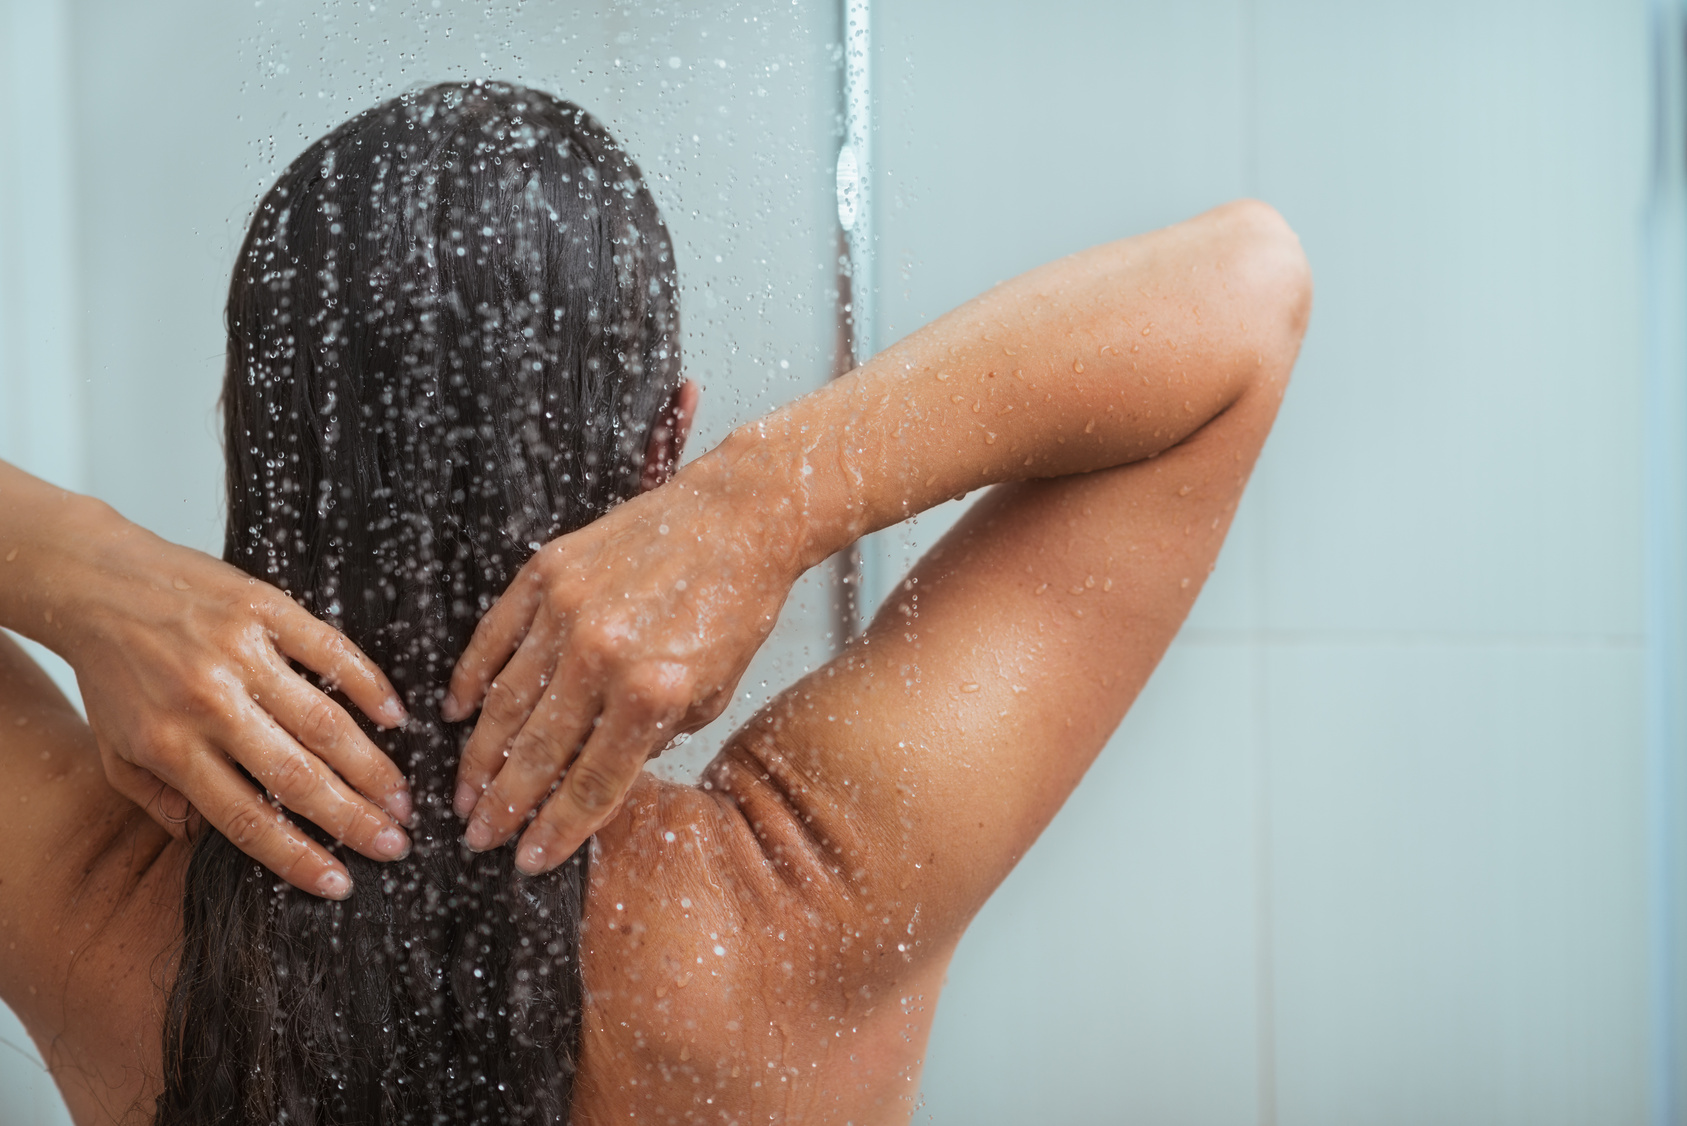 Dont  wash your hair every day !! wash your hair up to 4 times if that a week. the natural oils in your hair will keep it healthy and wont be stripped so often from shampoo and conditioner